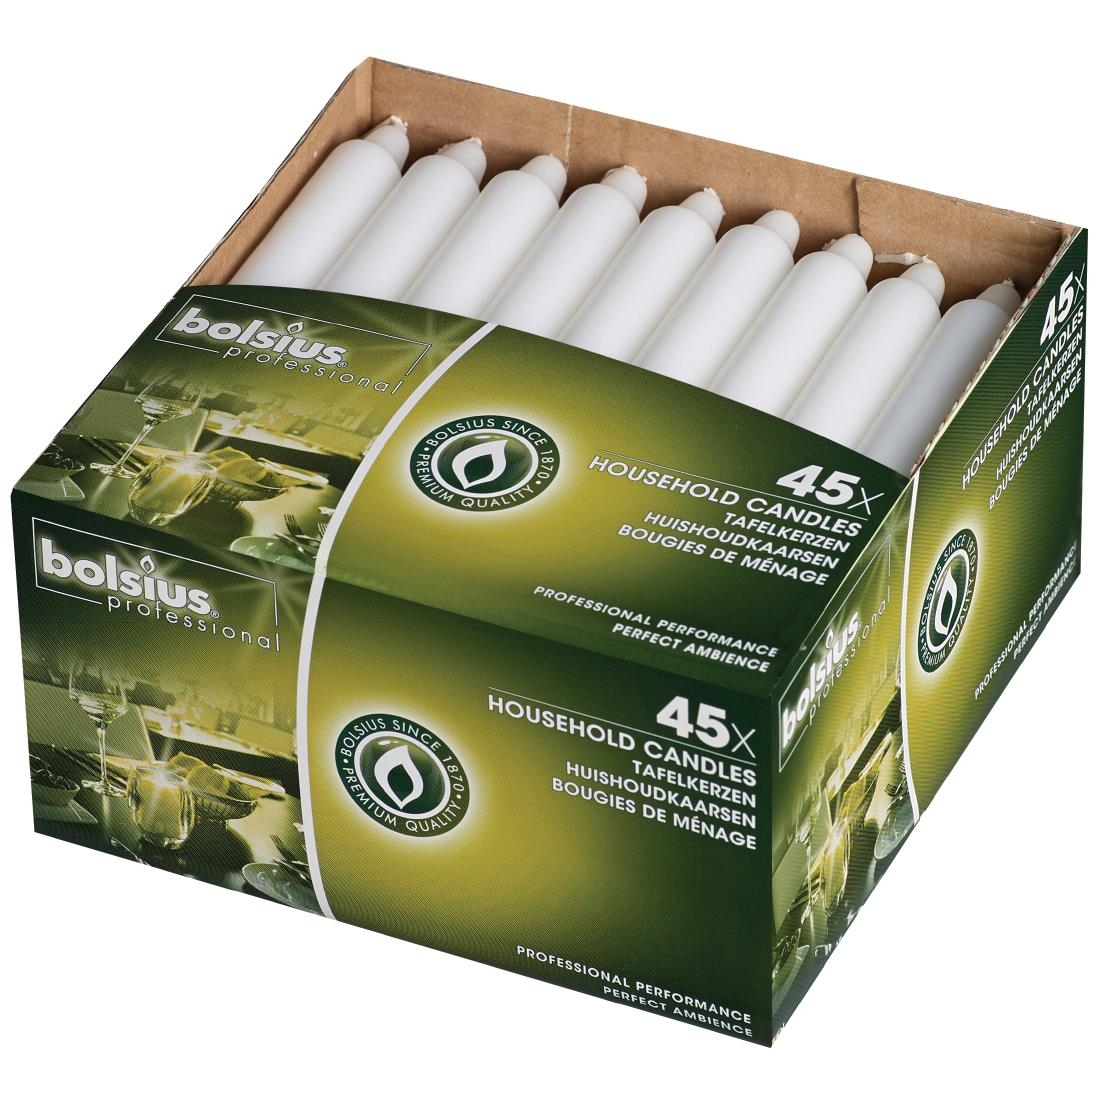 Image of Bolsius 7 Bistro Candles White (Pack of 45) Pack of 45